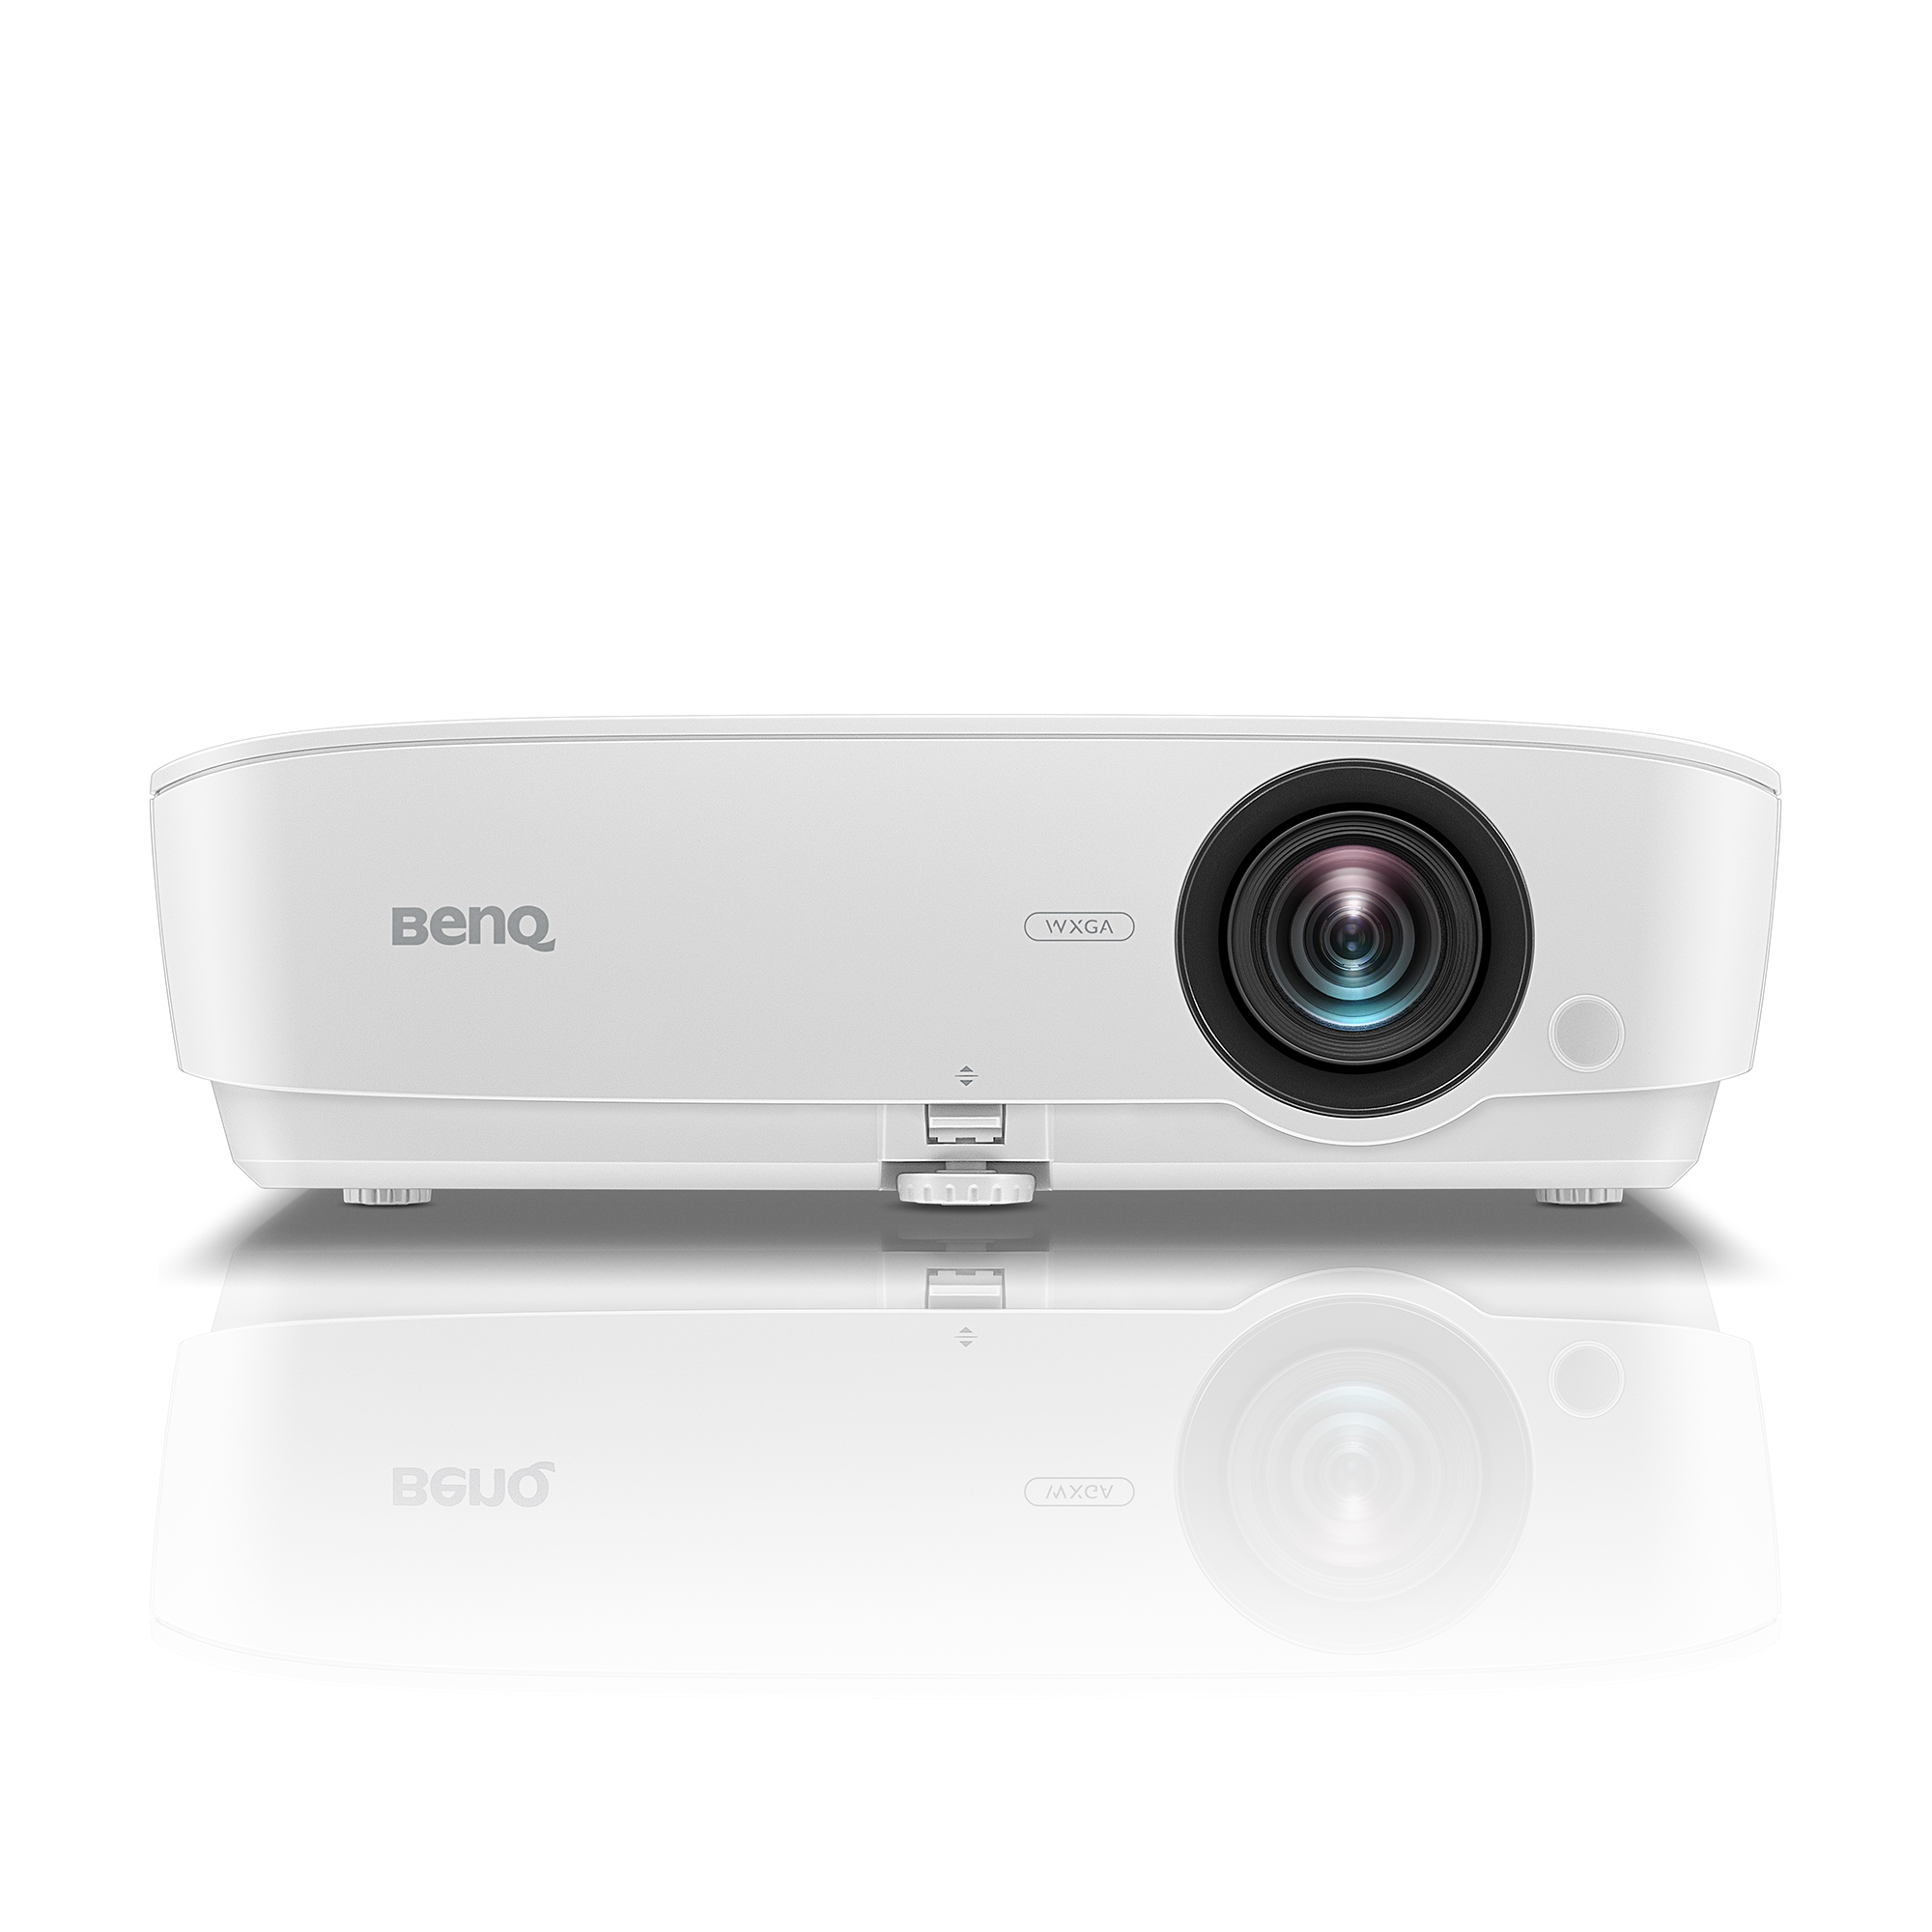 Computer screen projector Benq MW535 Projector 1280x800 Eco-Friendly WXGA Dual HDMI White Ref MW535